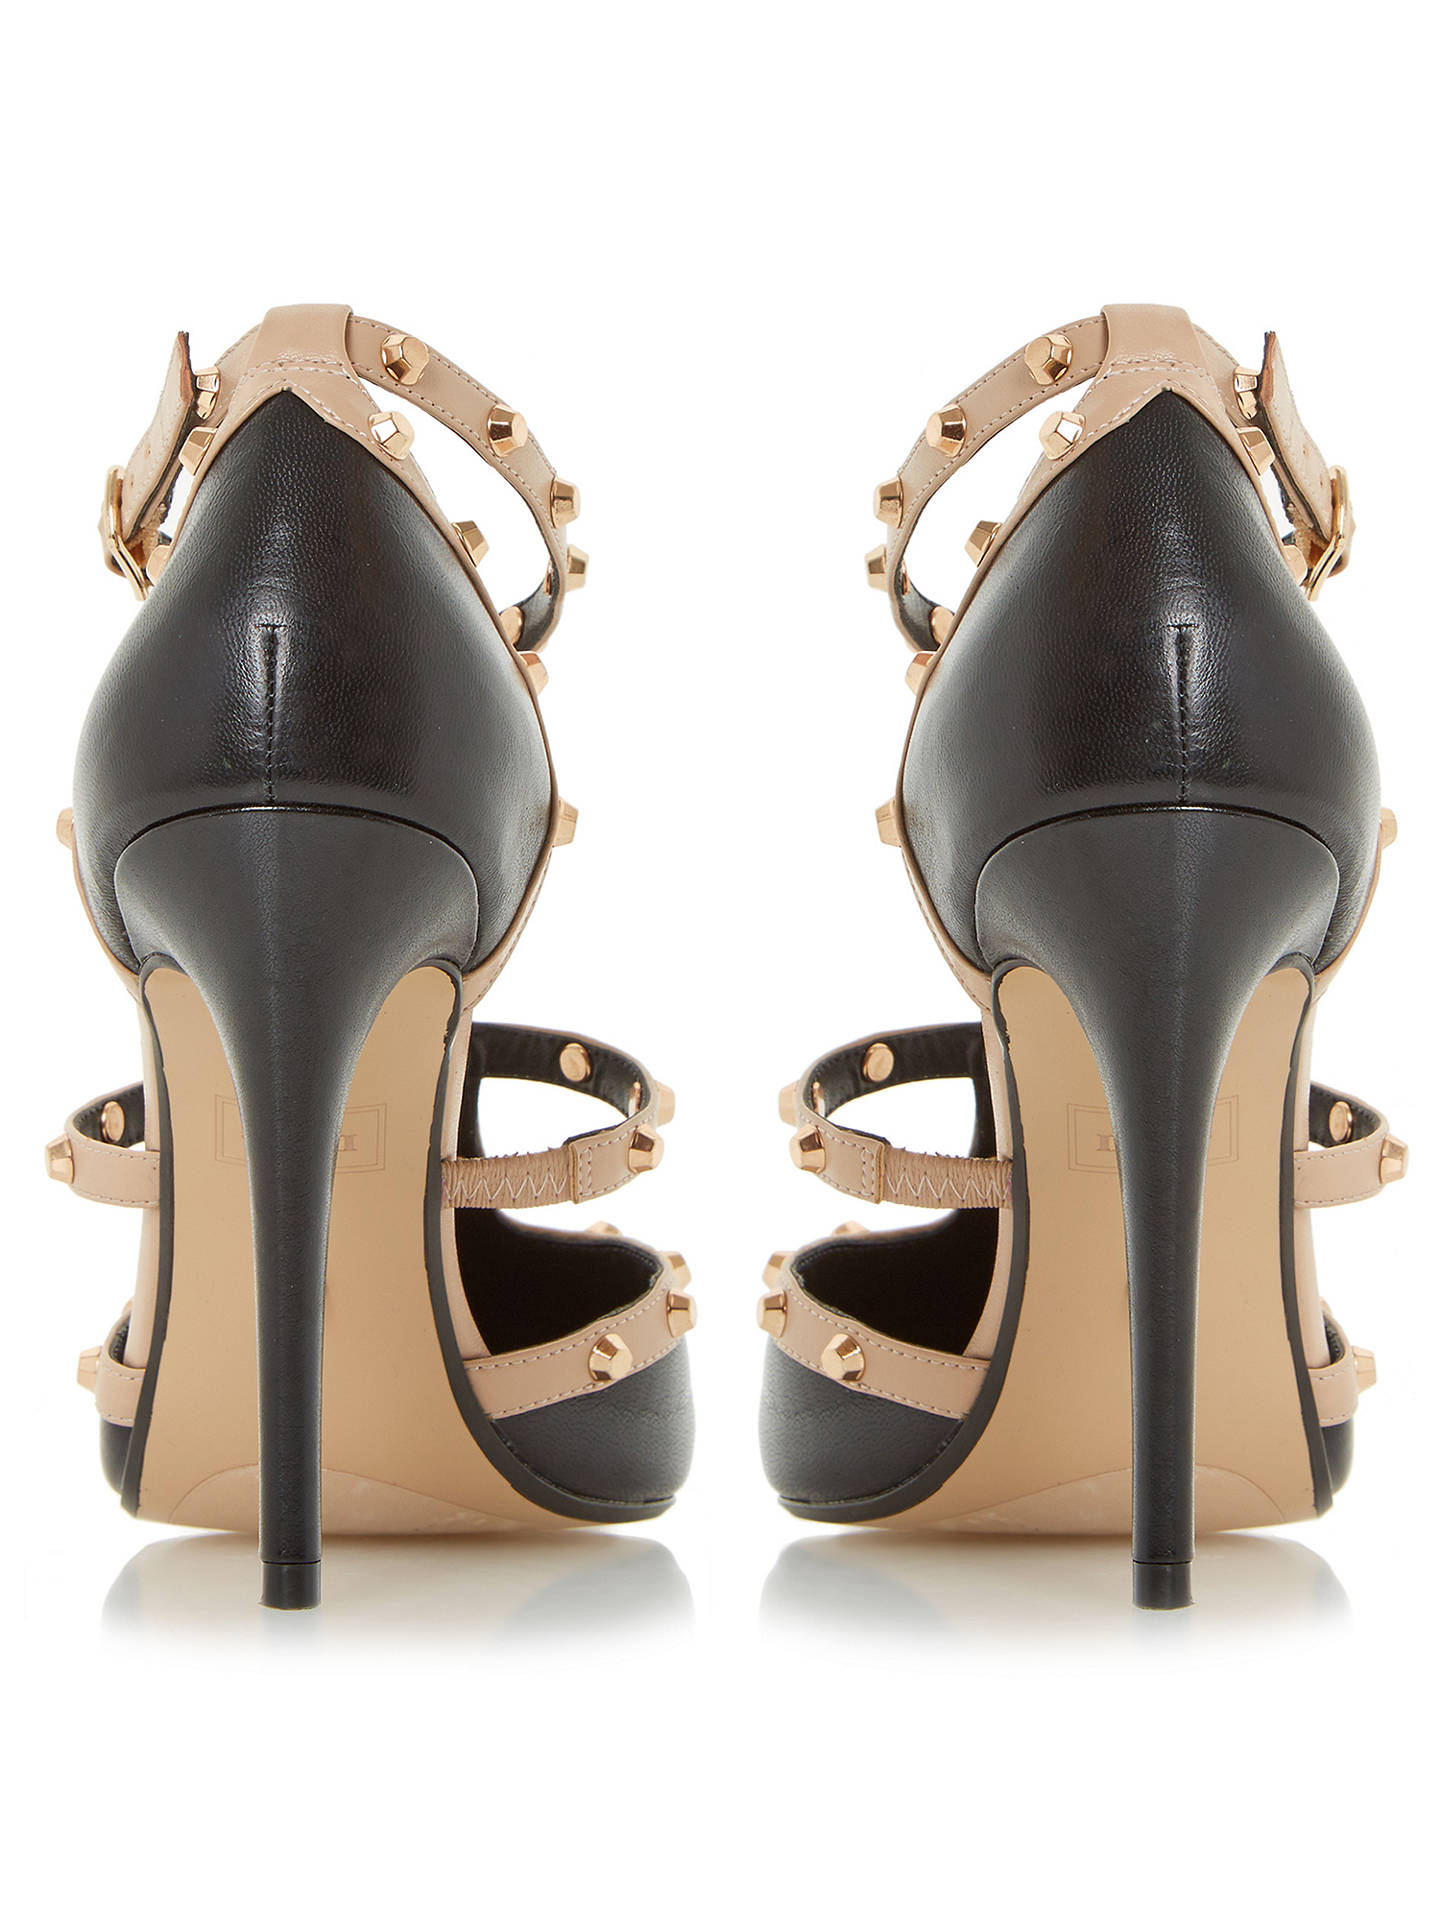 b35d57a87c9 Dune Daenerys Studded Cut Out Court Shoes, Black/Nude at John Lewis ...